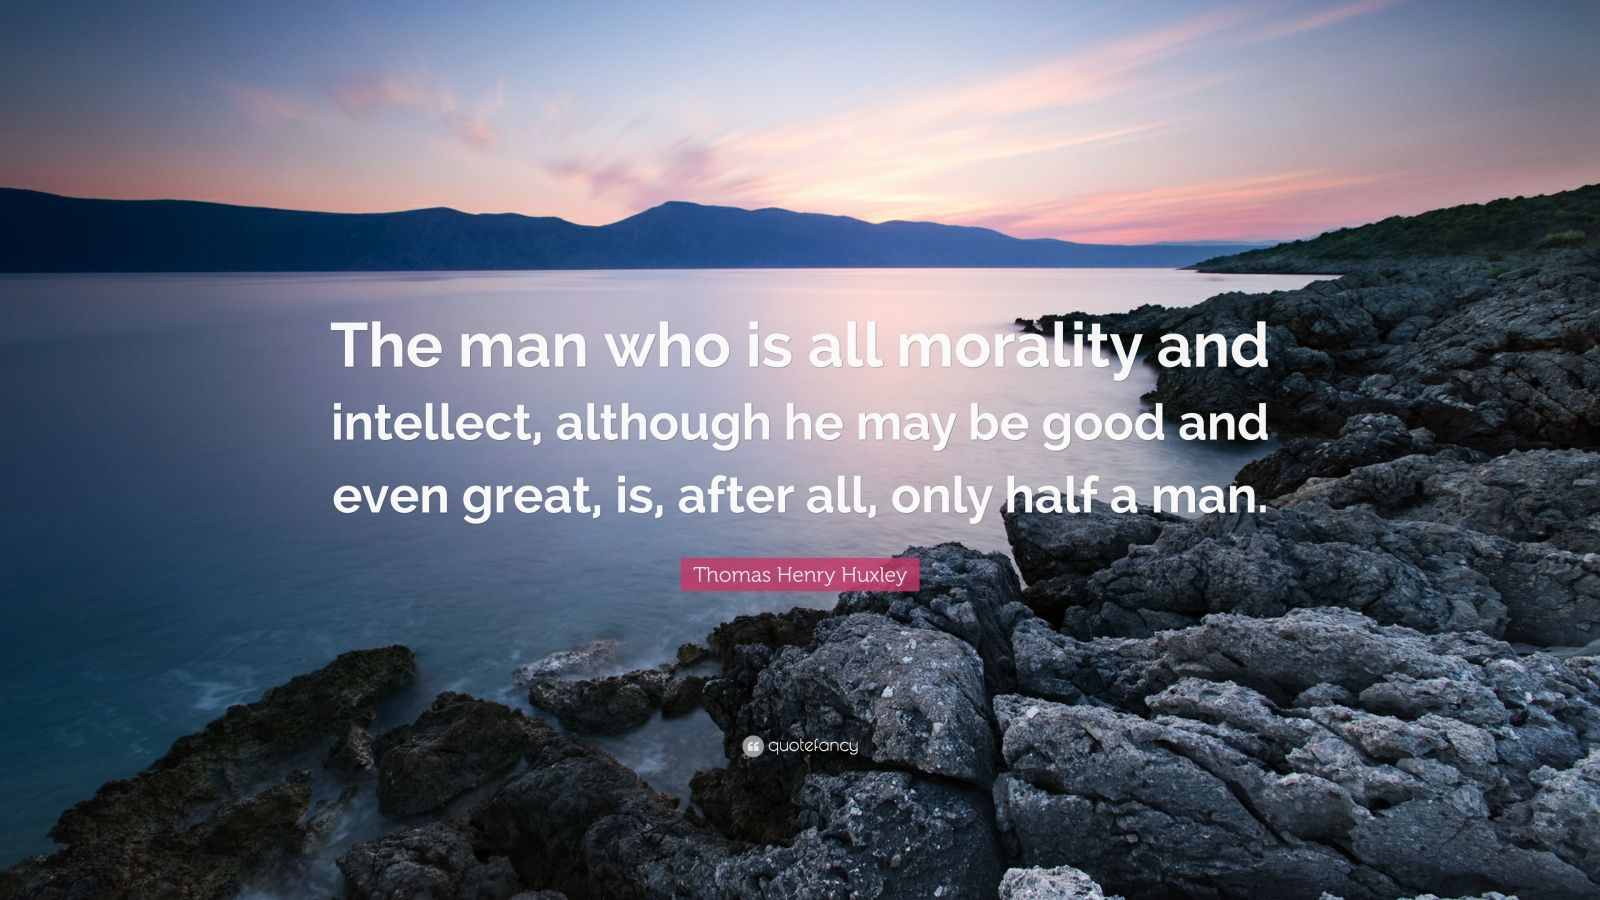 """Thomas Henry Huxley Quote: """"The man who is all morality and intellect, although he may be good and even great, is, after all, only half a man."""""""